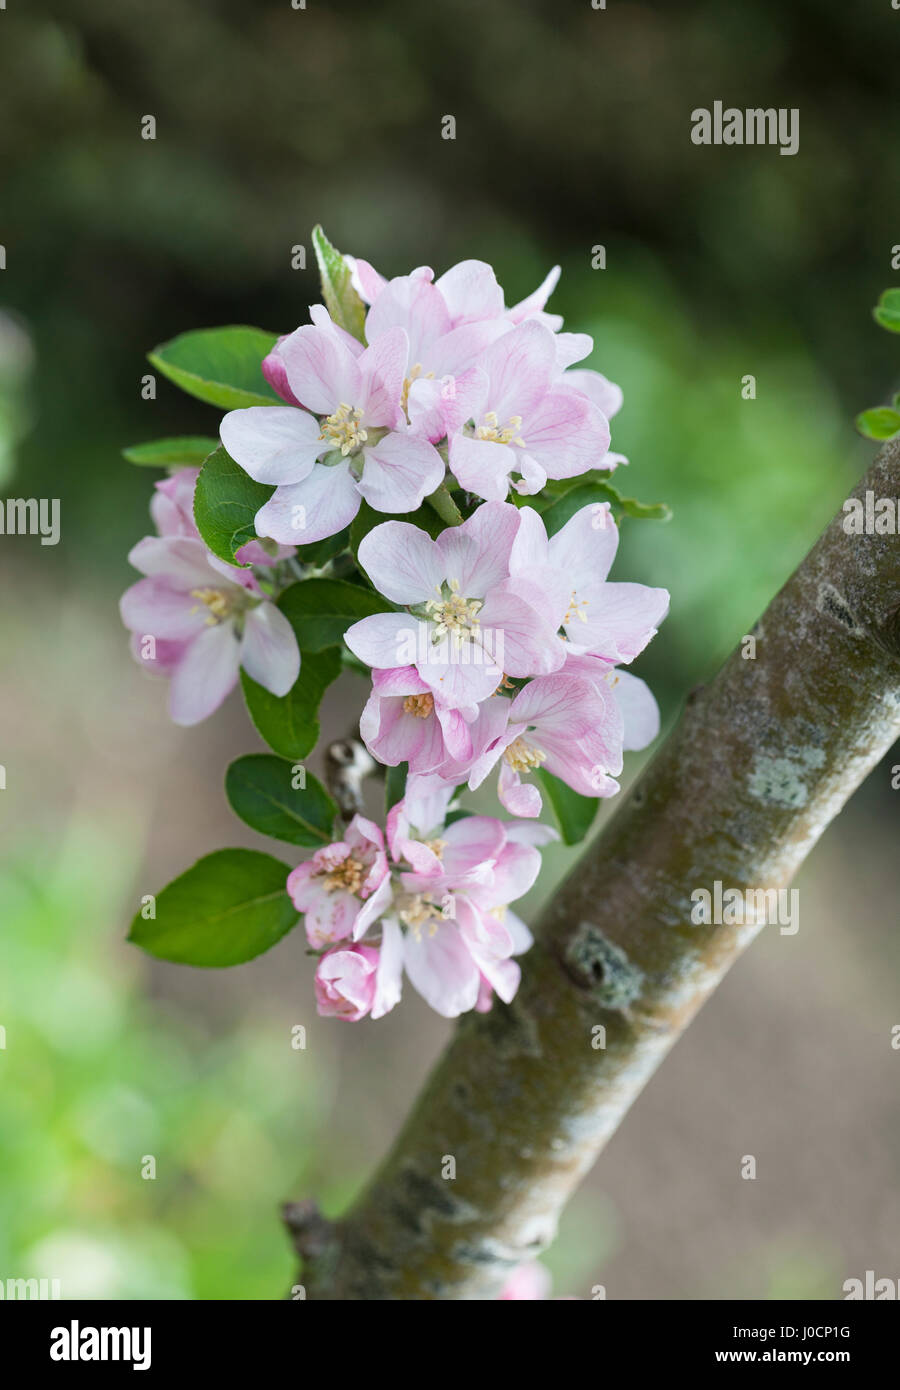 Close up of Malus domestica, Brownlees Russet apple tree blossom, spring, England - Stock Image